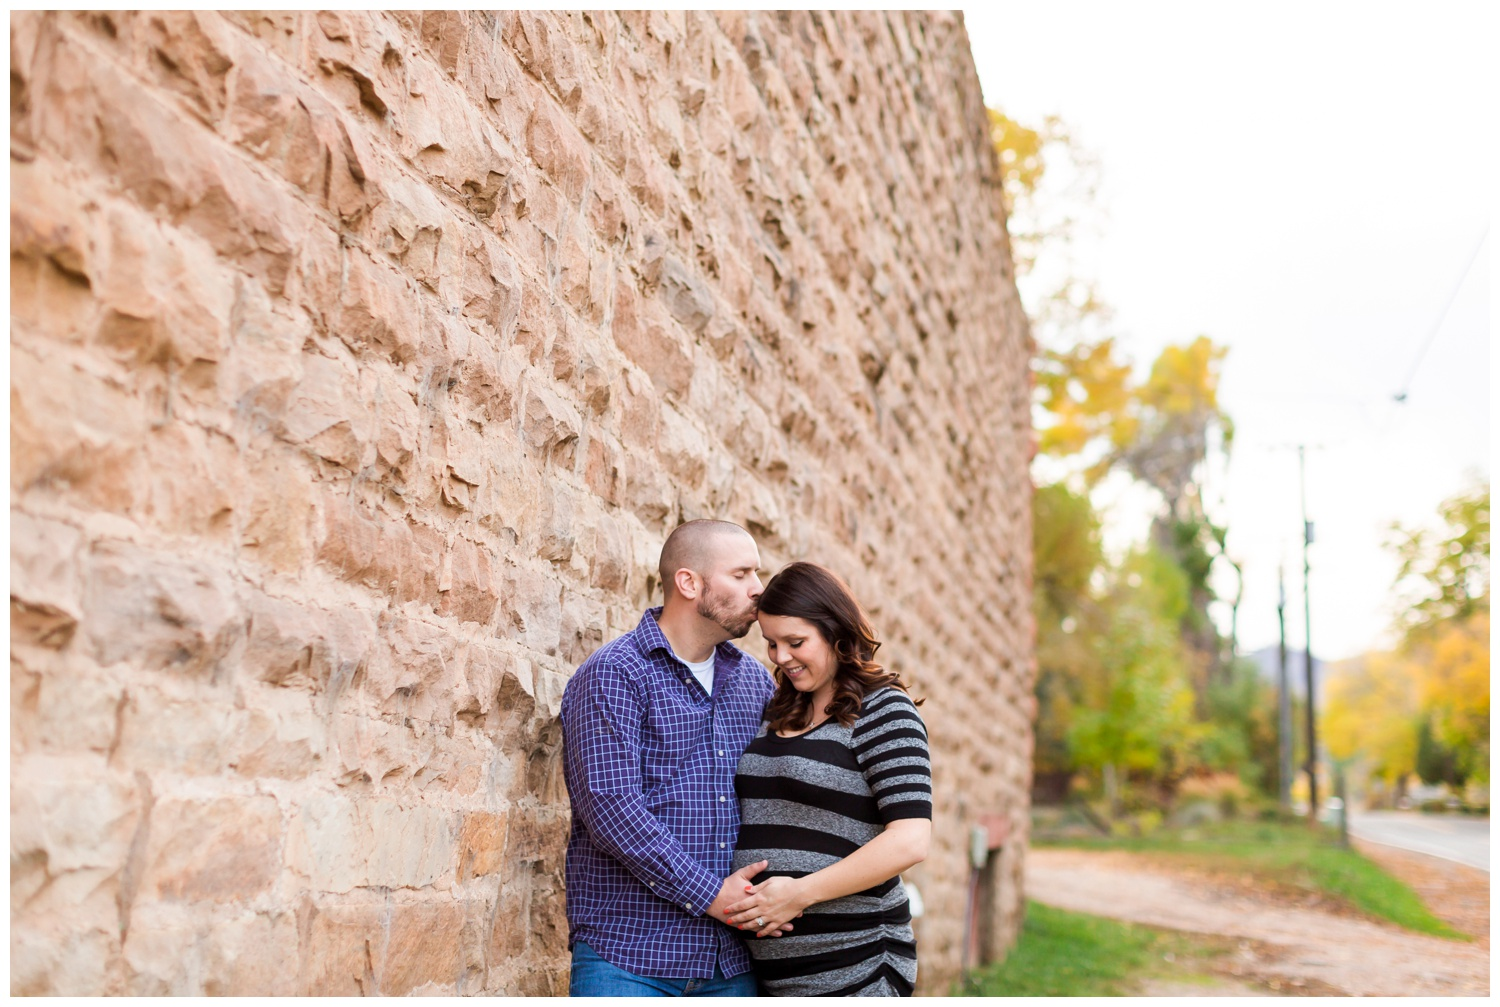 Fort Collins Maternity Photography11.jpg